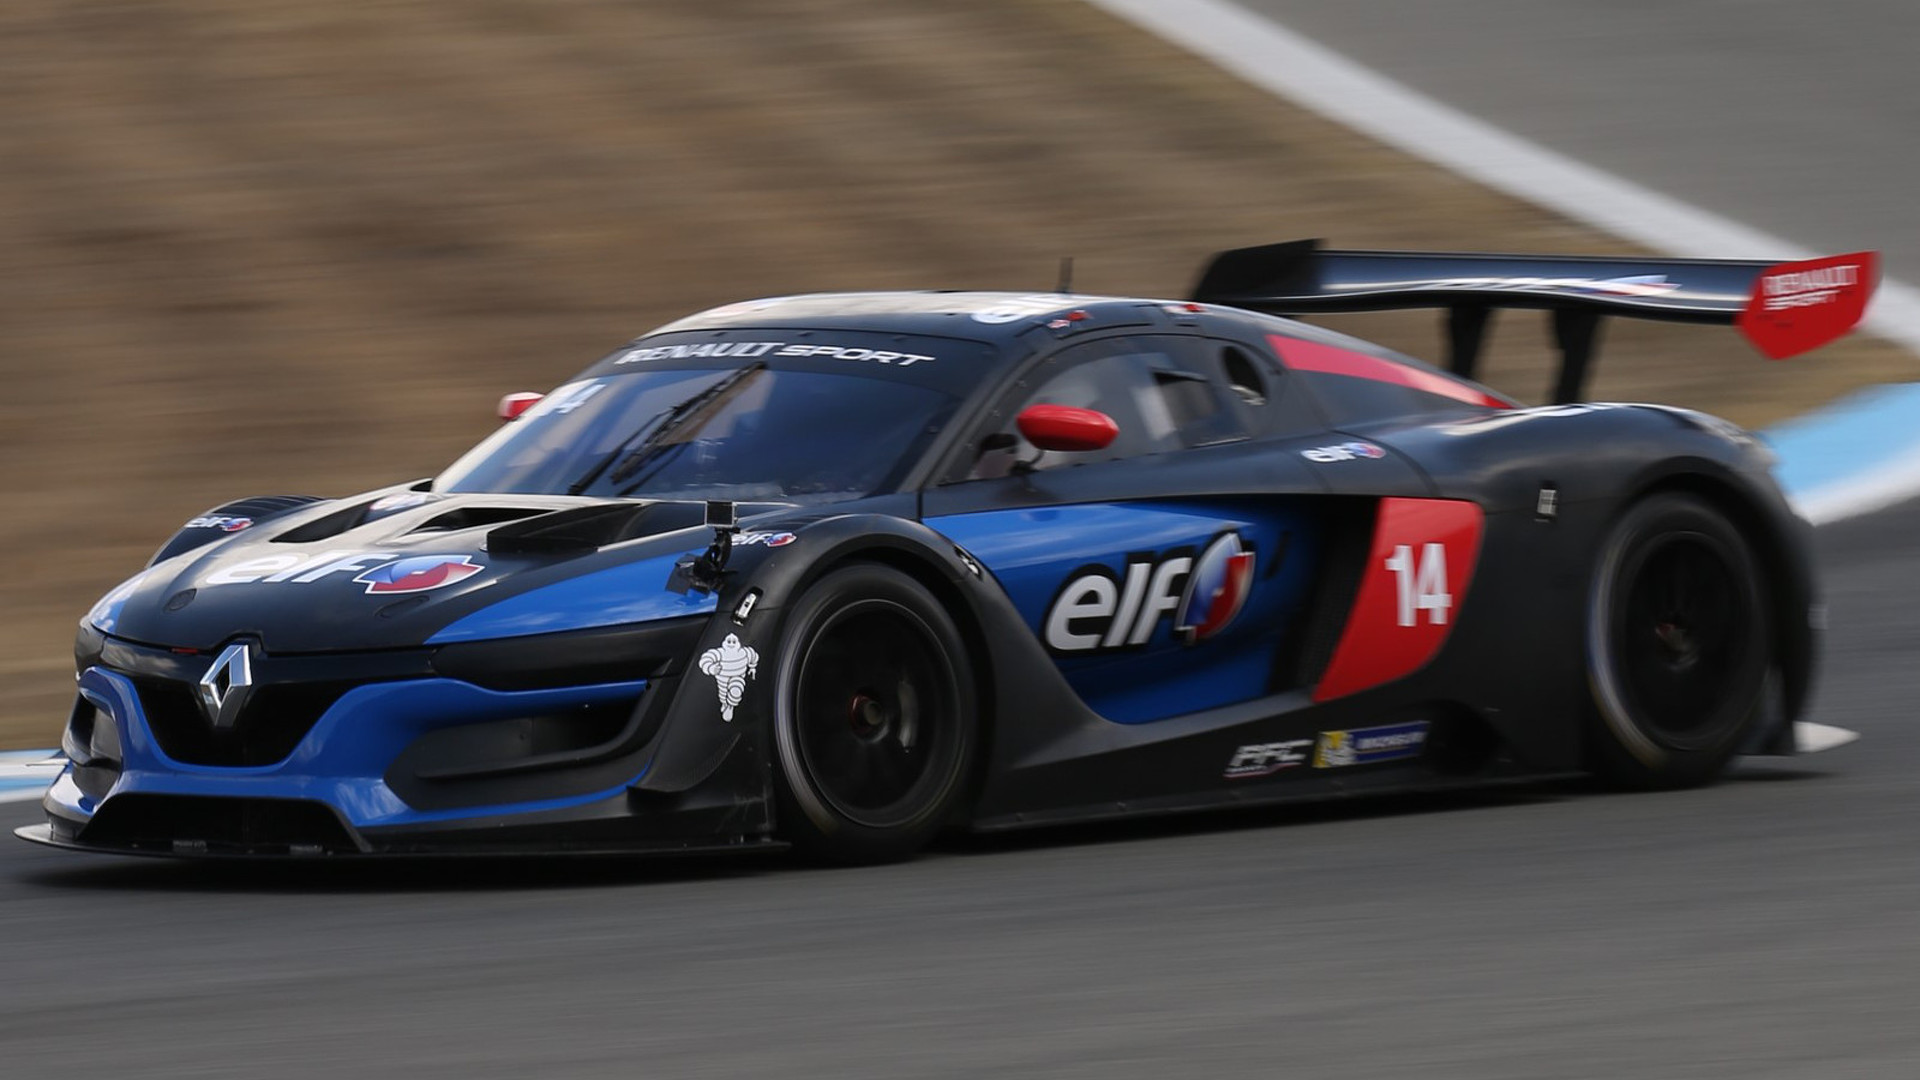 RENAULT SPORT R.S. 01 tackles the Jerez circuit [videos]